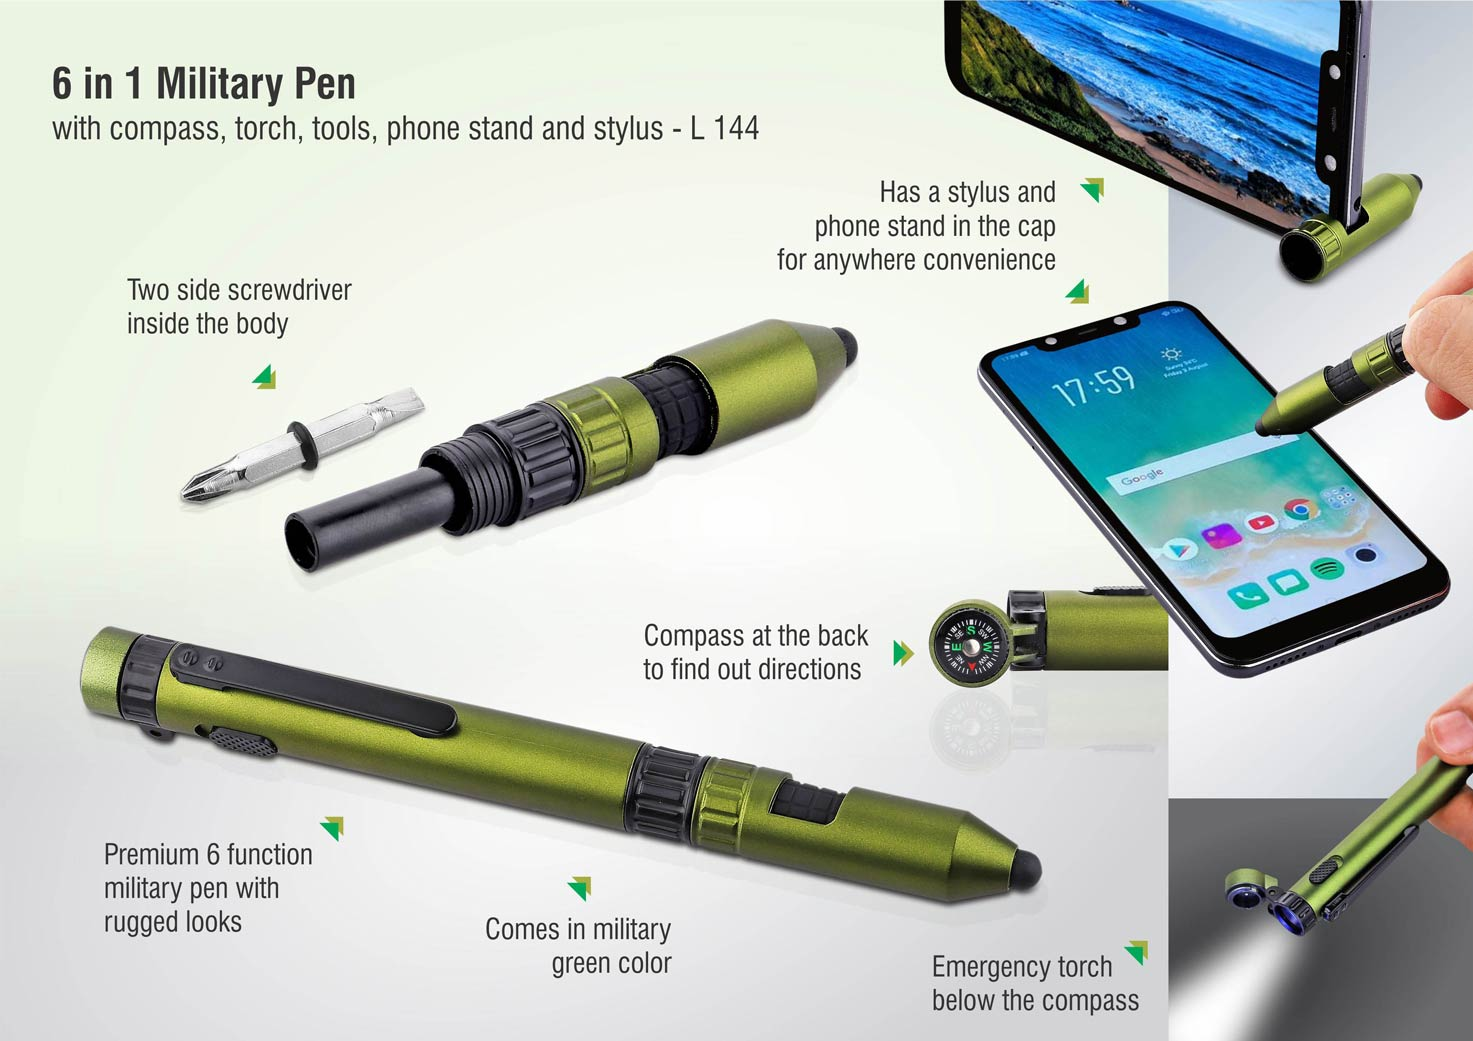 L144 - 6 in 1 Military pen with compass, torch, tools, phone stand and stylus